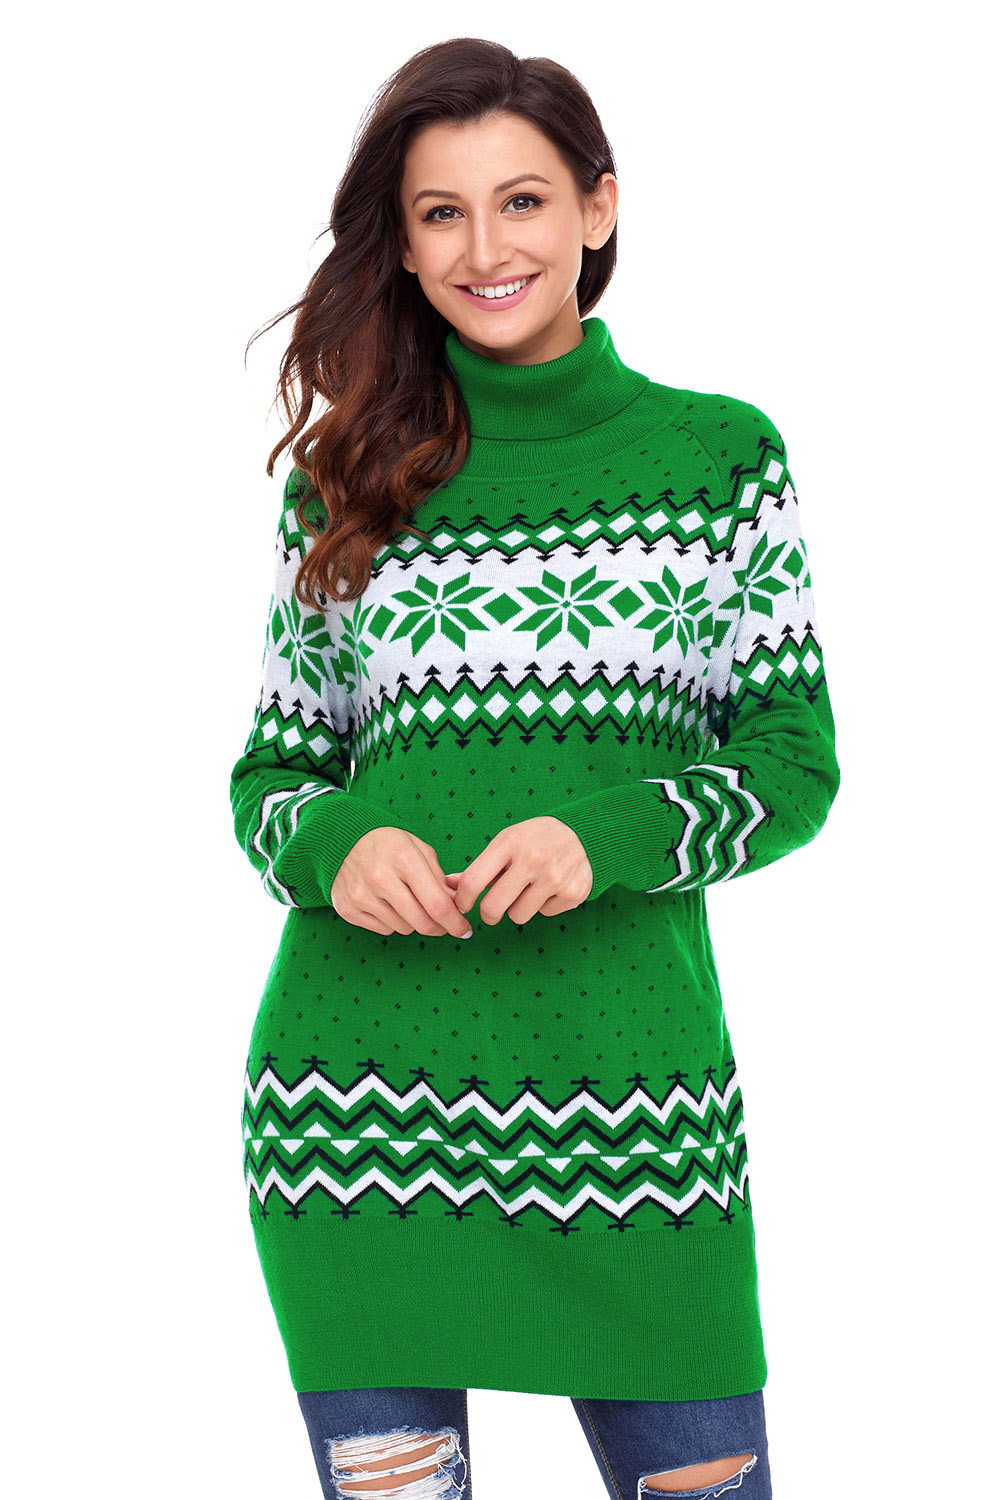 Green Christmas Snowflake Knit Turtleneck Sweater